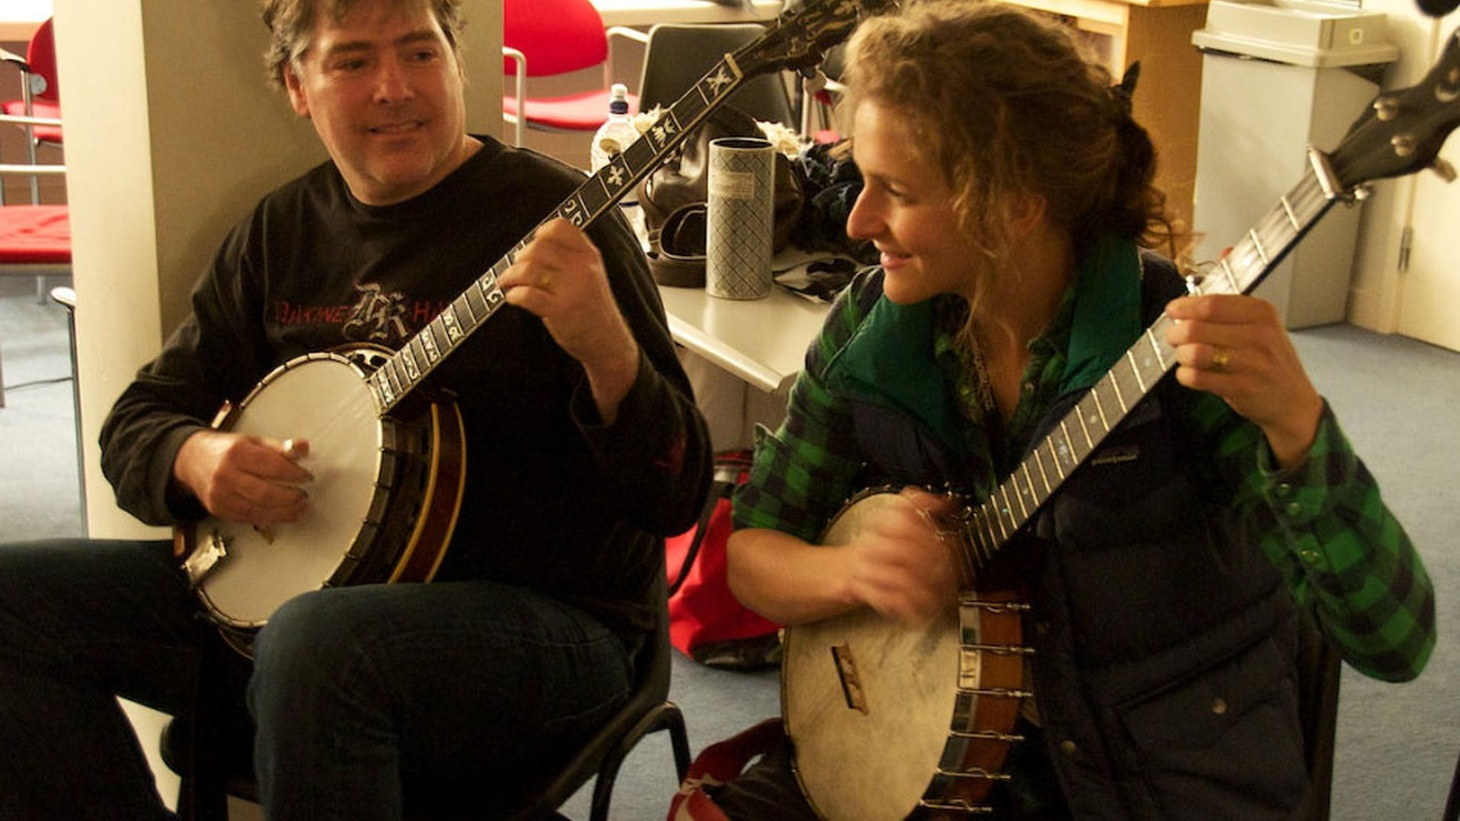 Married banjo wizards Béla Fleck and Abigail Washburn perform songs from their first album together.